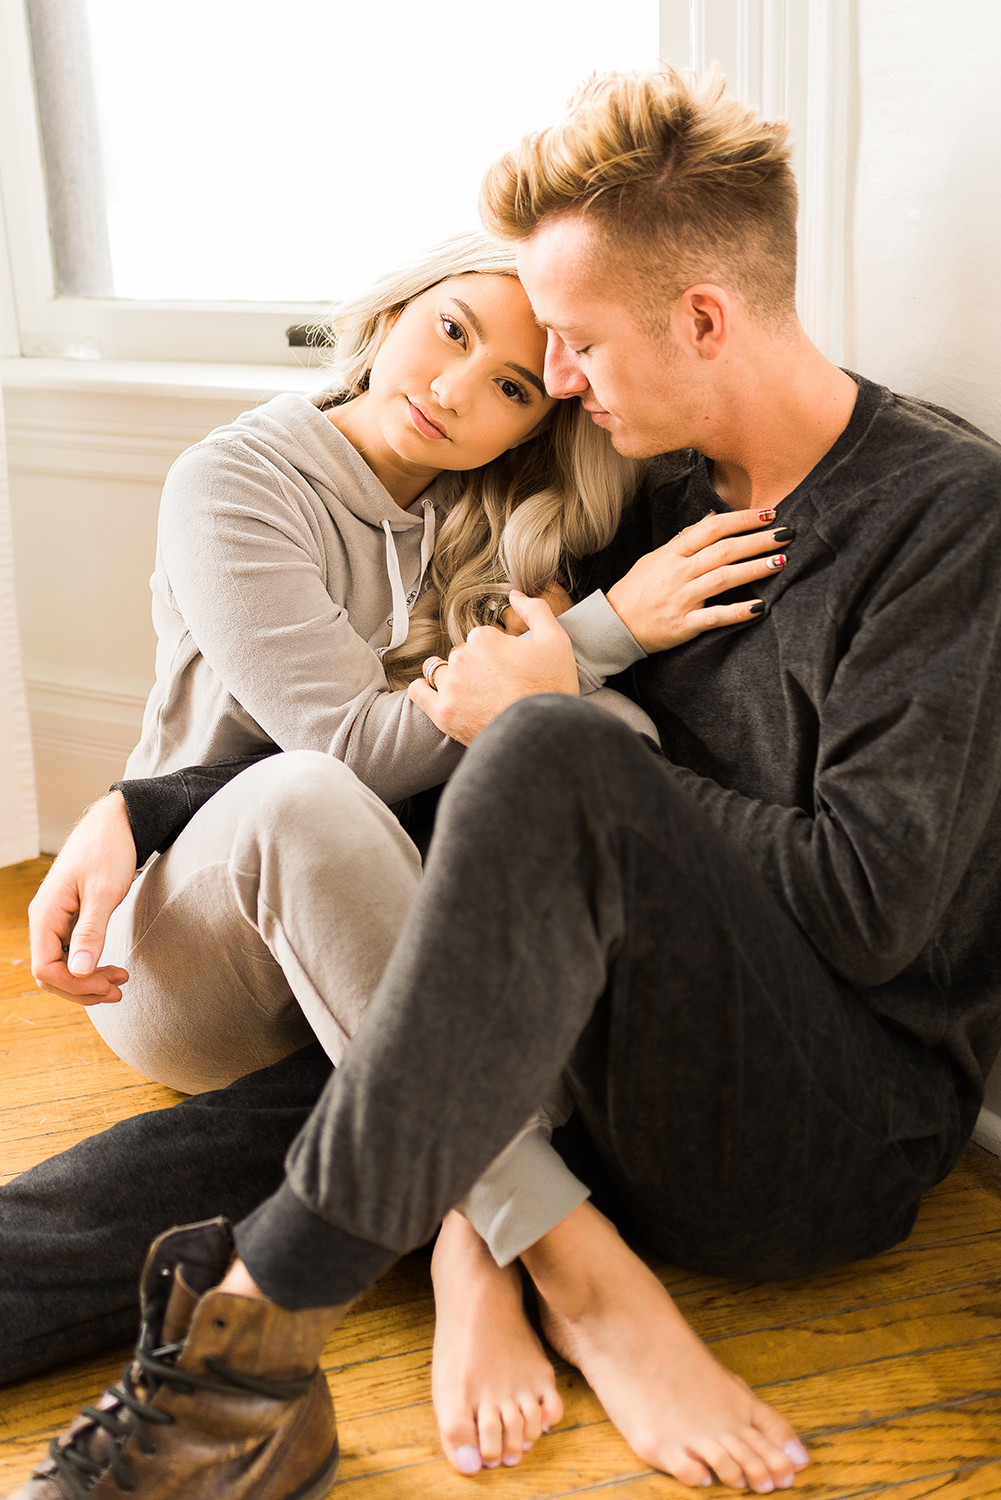 in-home-couples-session-colorado-photographer-11.jpg